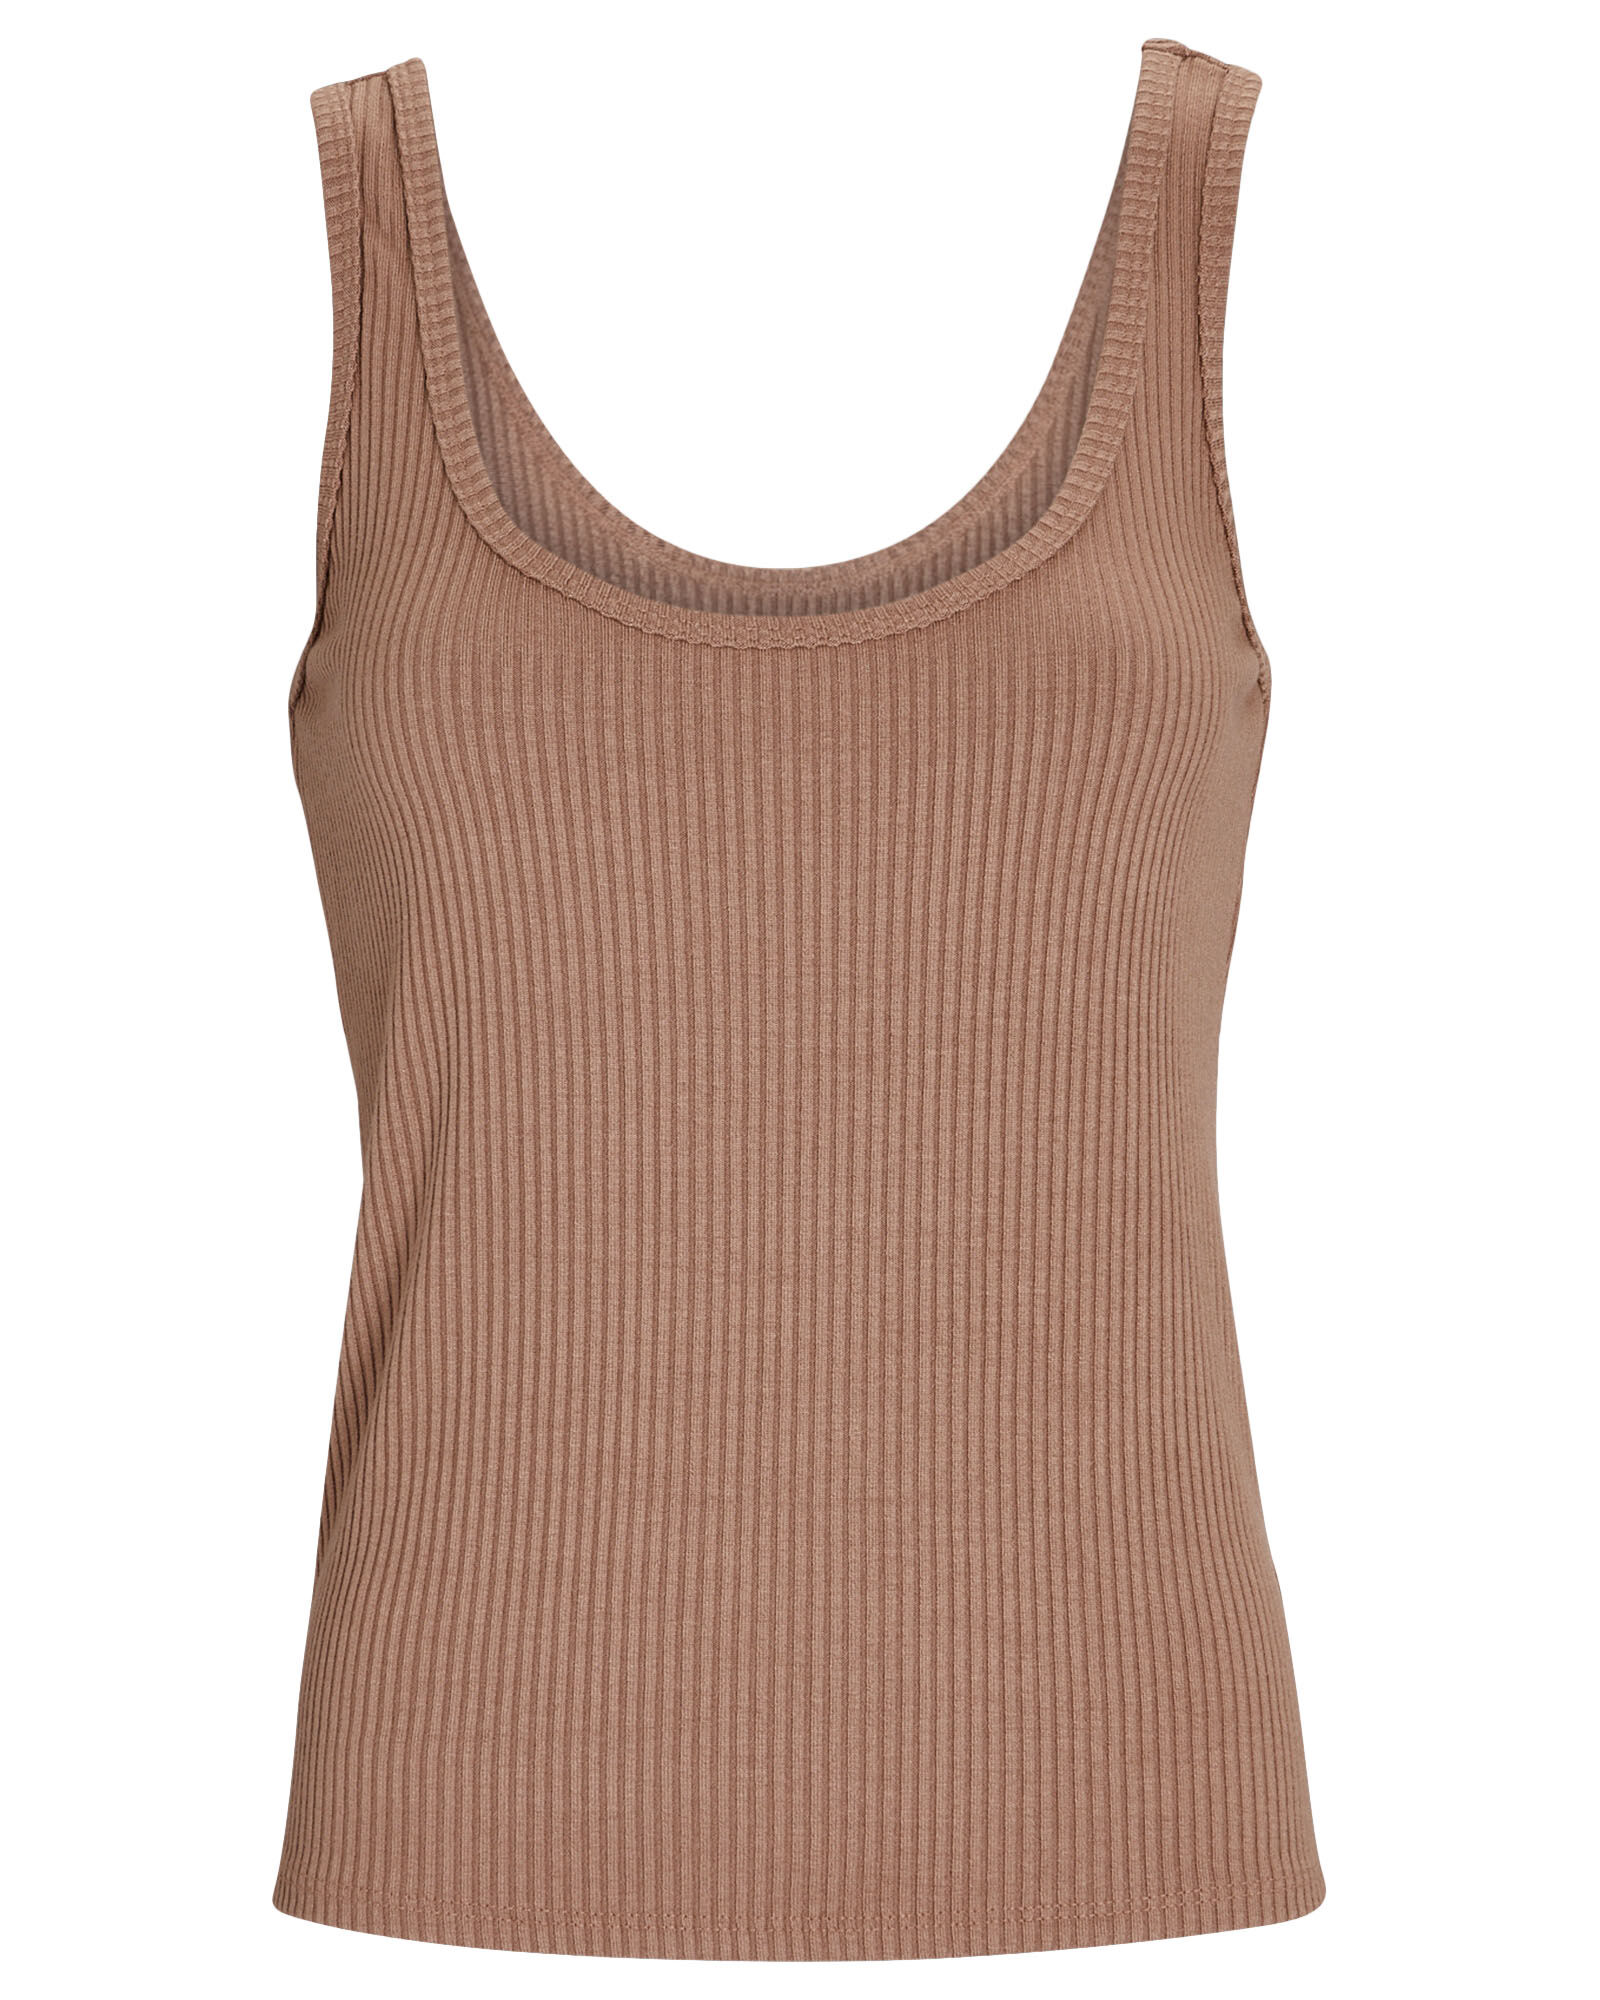 Iman Rib Knit Tank Top, BEIGE, hi-res